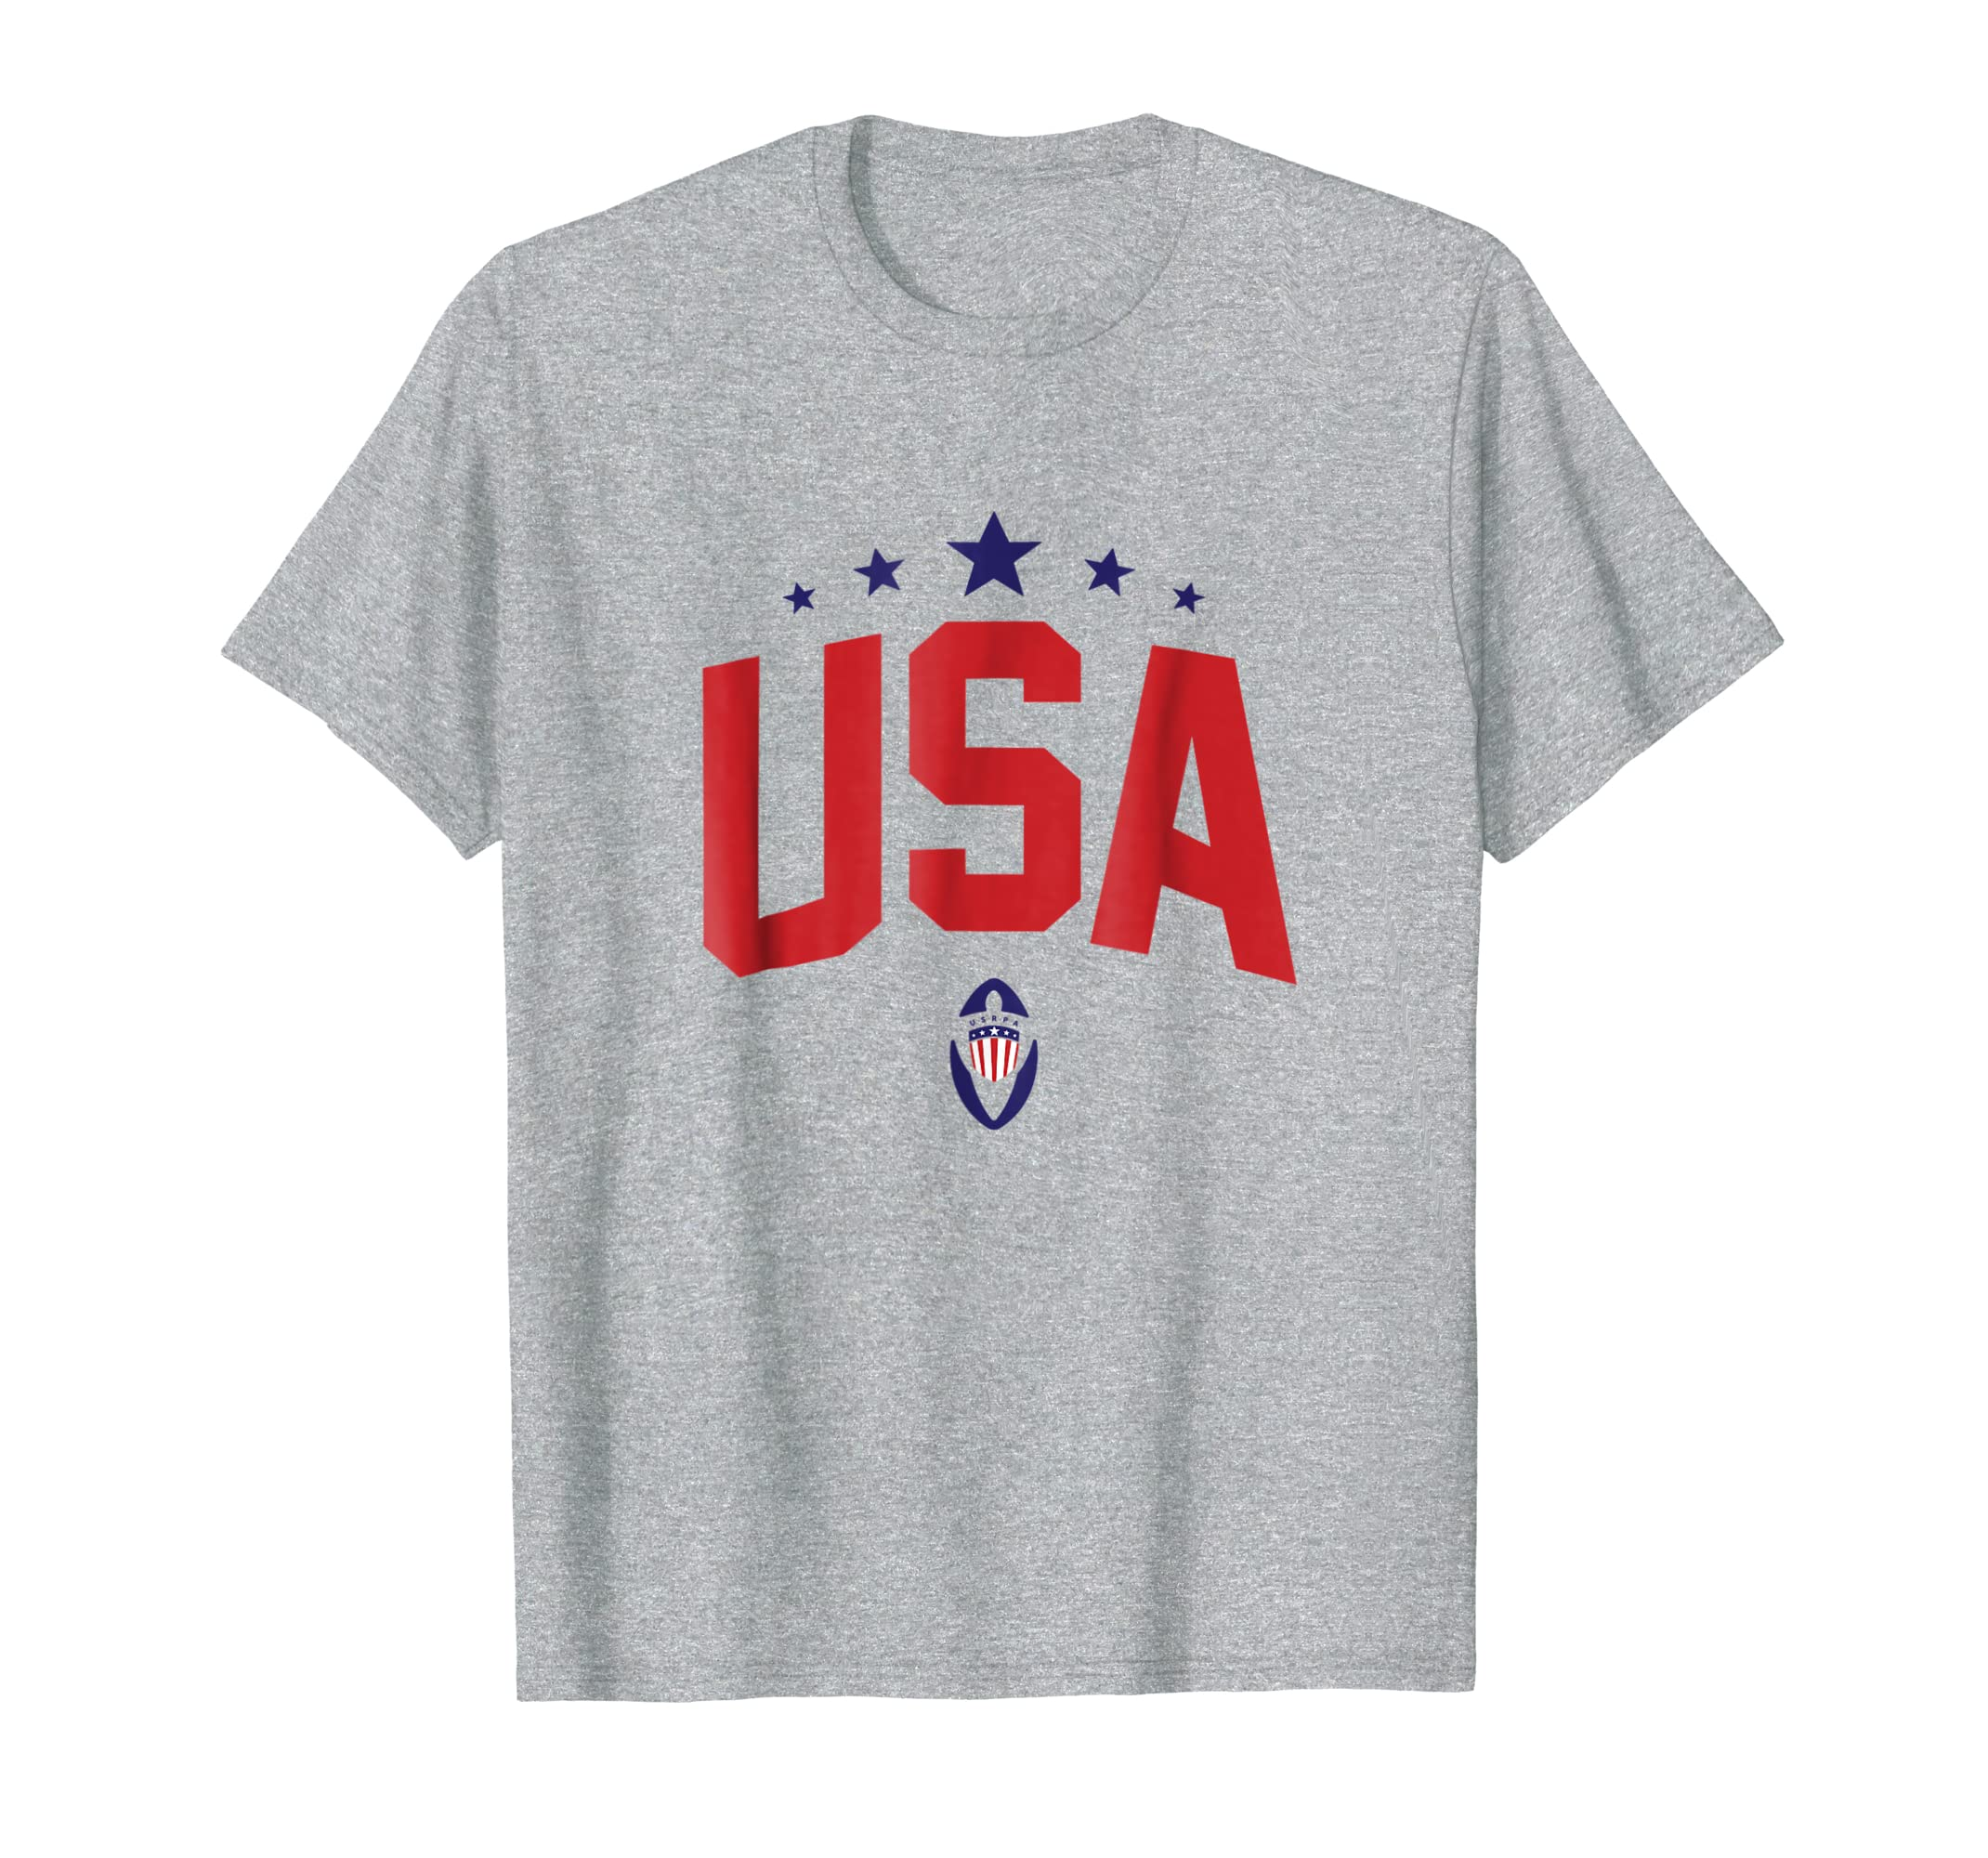 USA Rugby Players Perry Baker Tee-mt